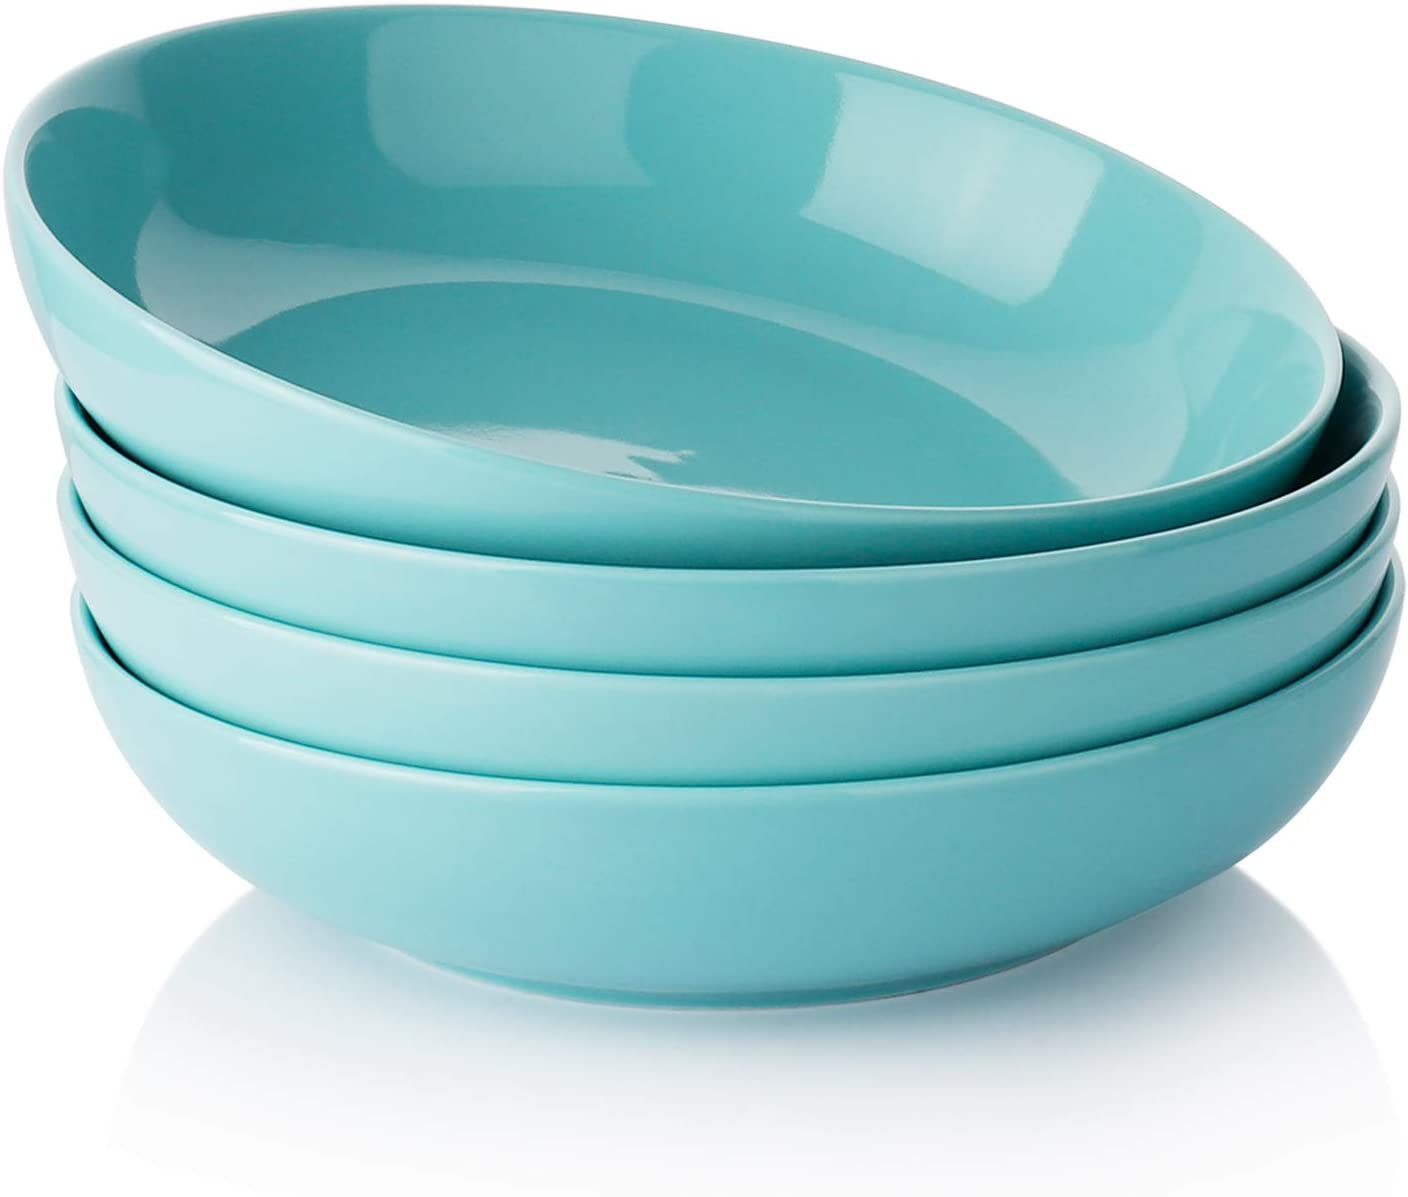 Turquoise and off white bowl